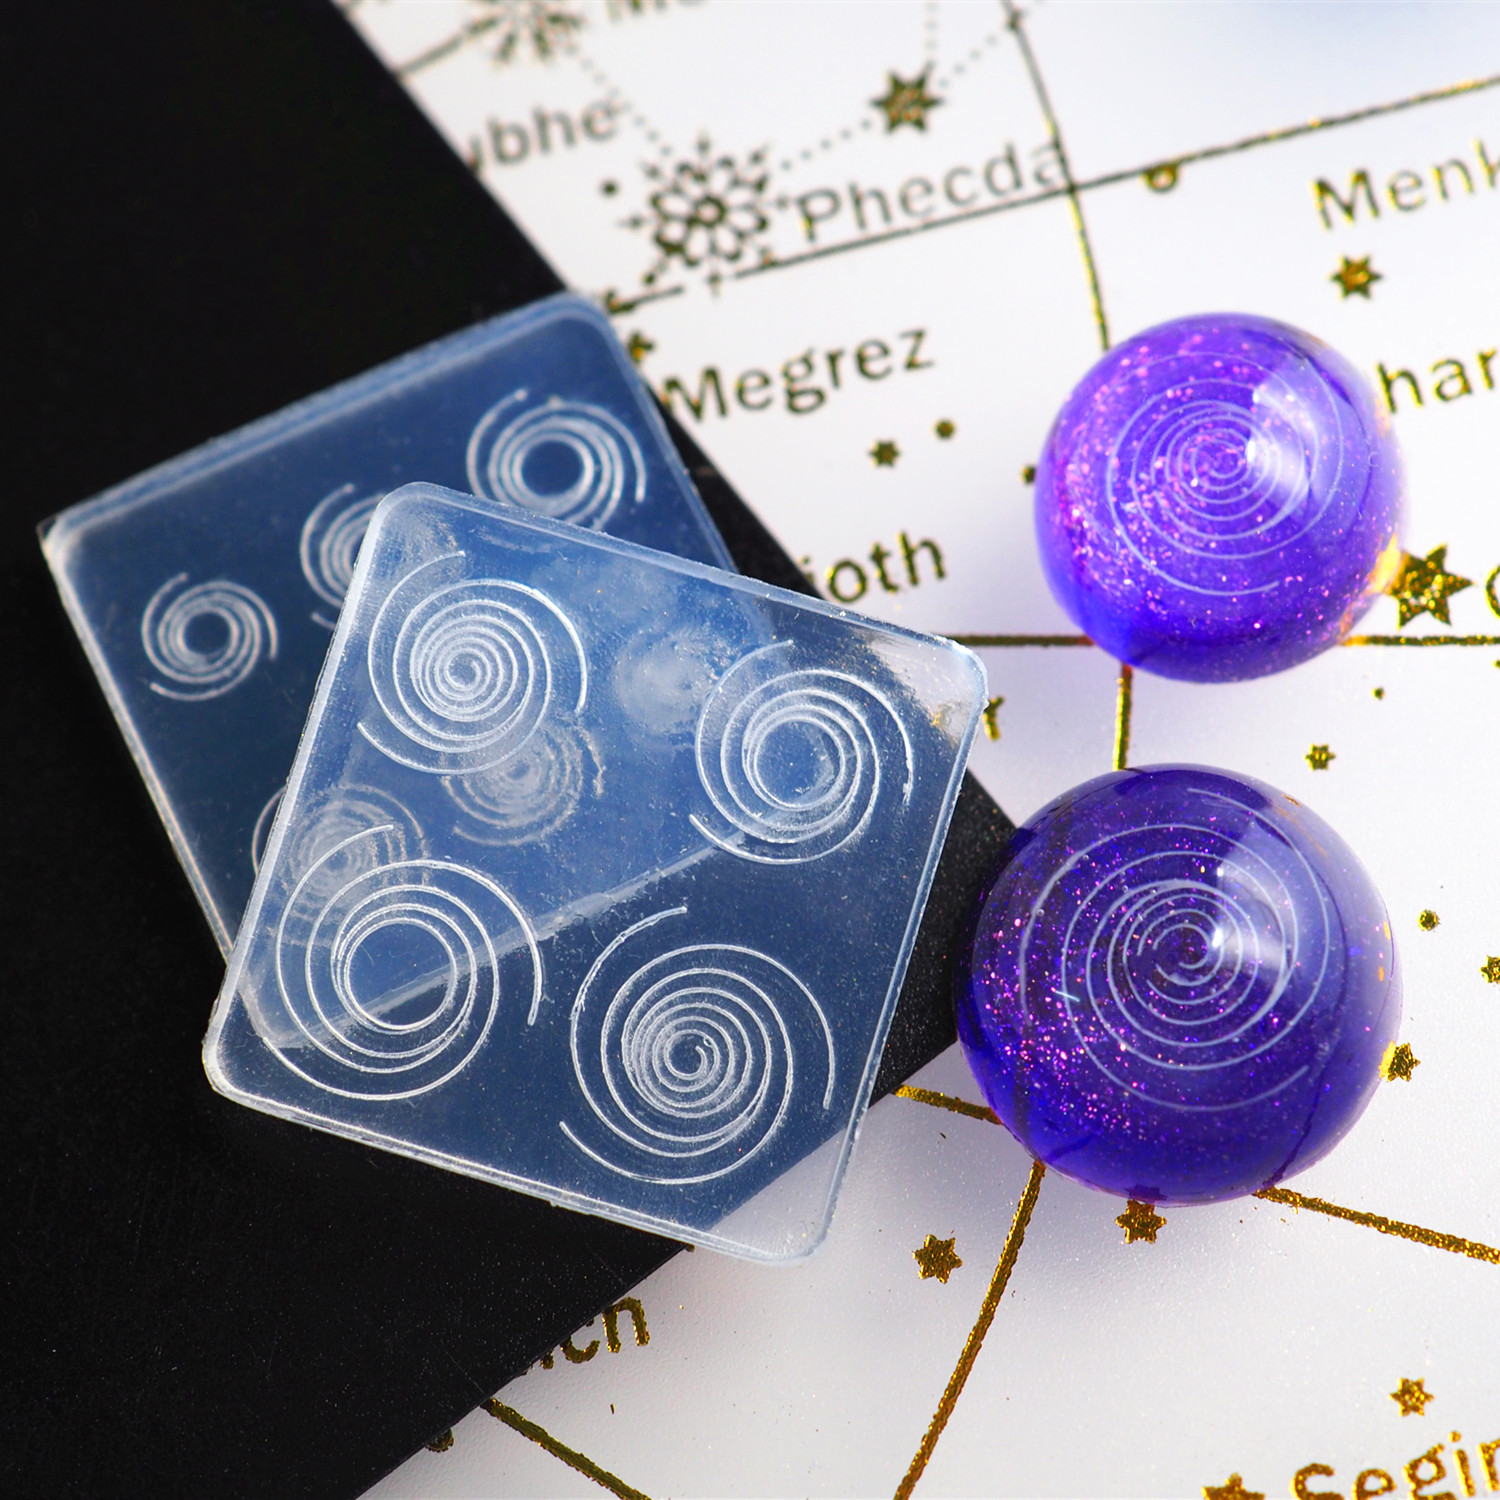 1PC Sky Spiral  Shaped Jewelry Tool Jewelry Mold UV Epoxy Resin Silicone Molds For Making Jewelry